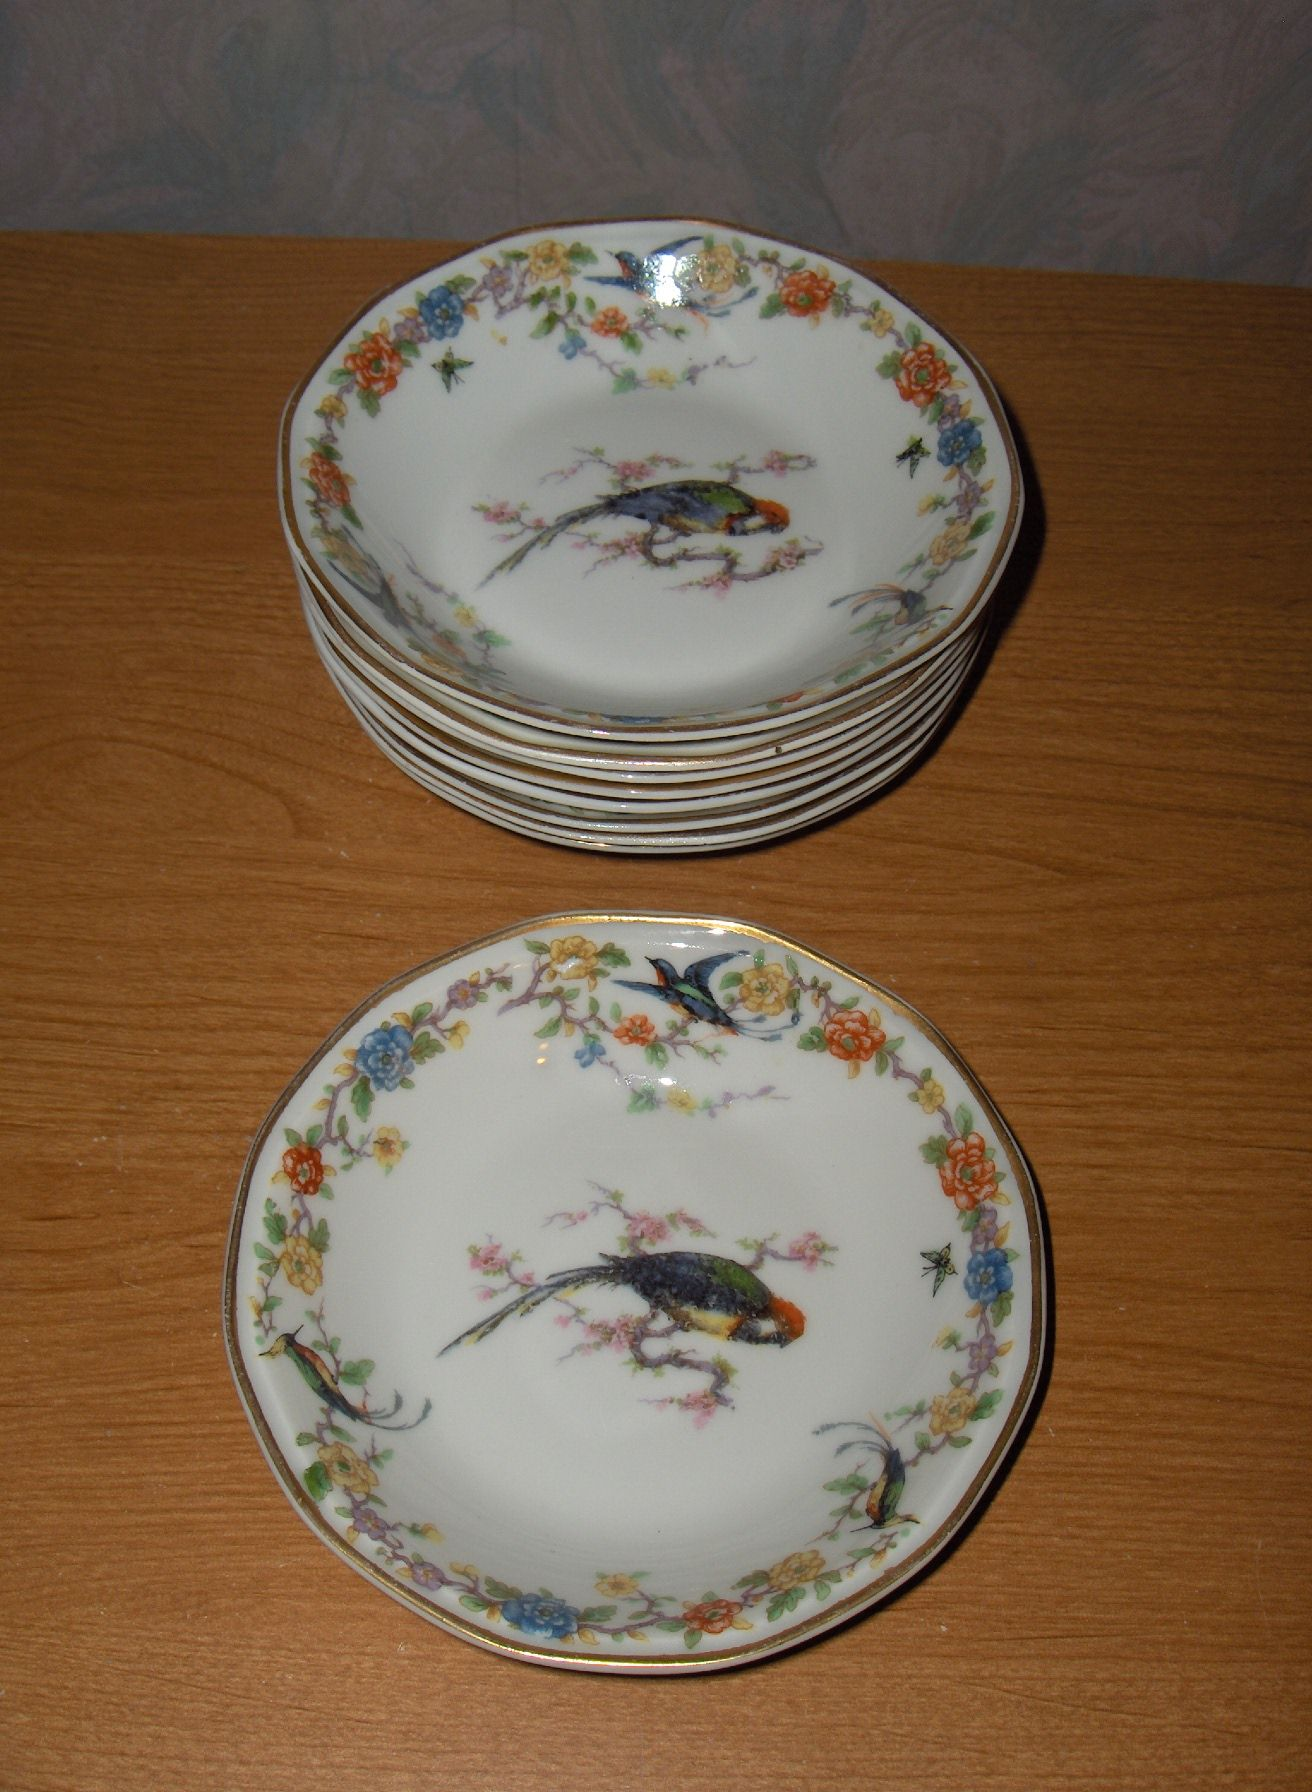 9 Antique Vintage Haviland Limoges China Arcadia Birds Dessert Bowls ...